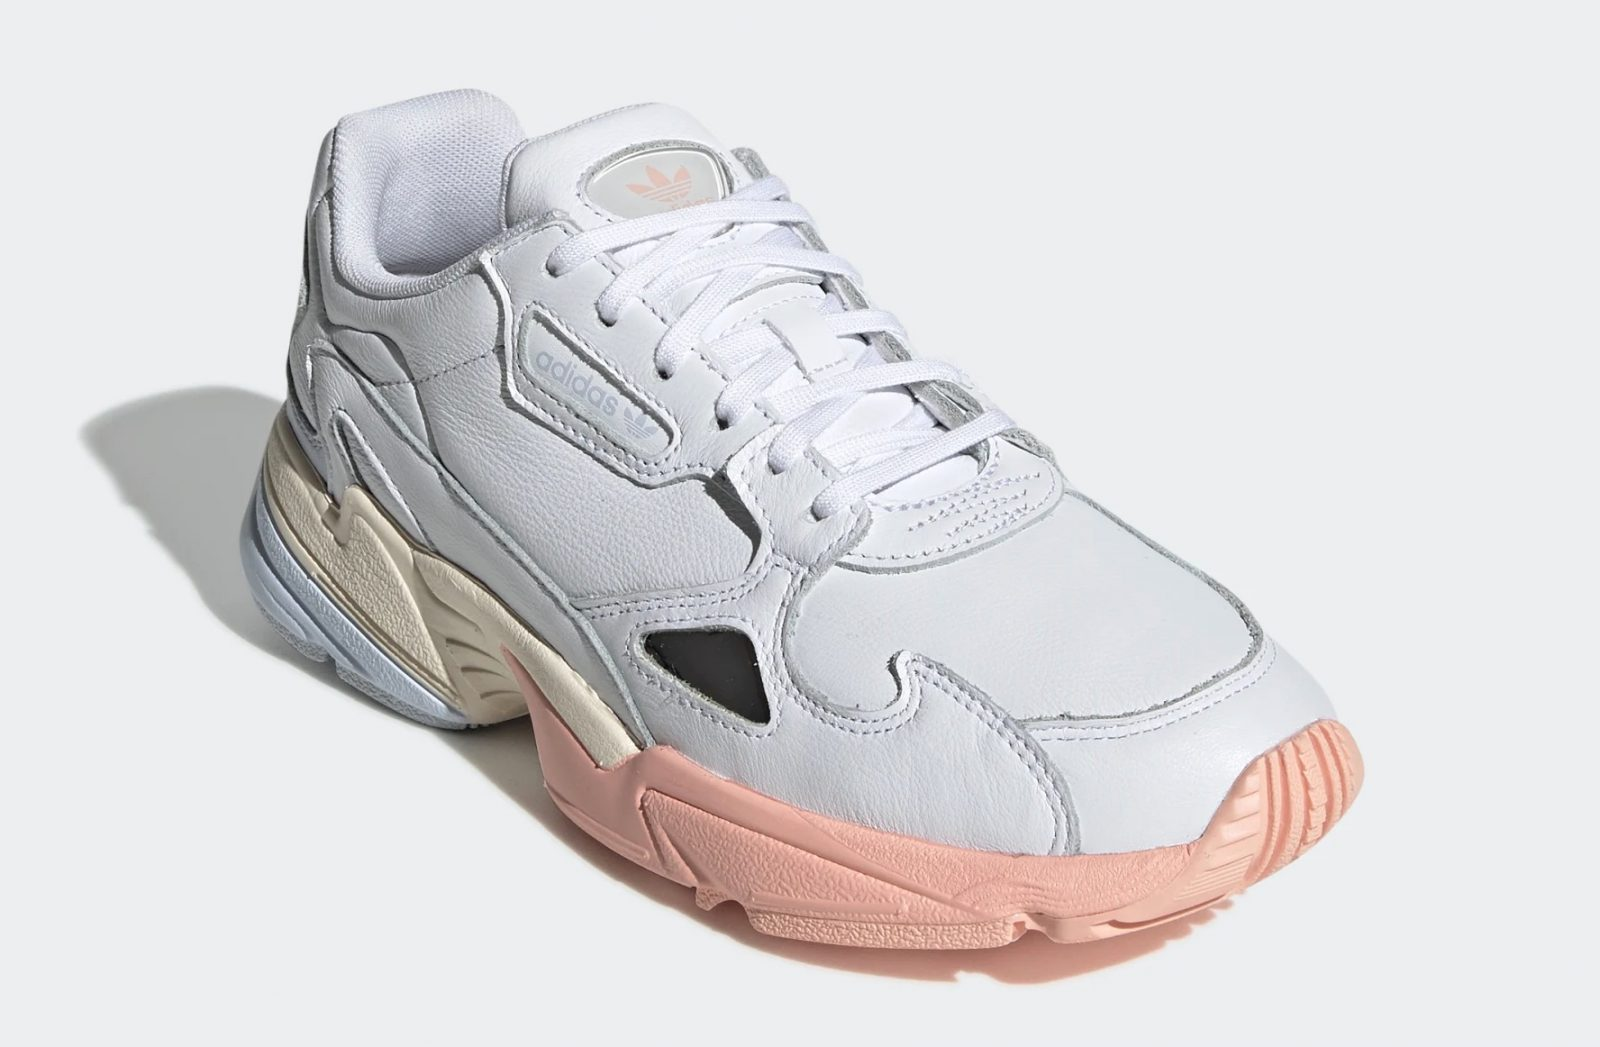 We Are Loving The Pastel Hues On This New adidas Falcon diagonal